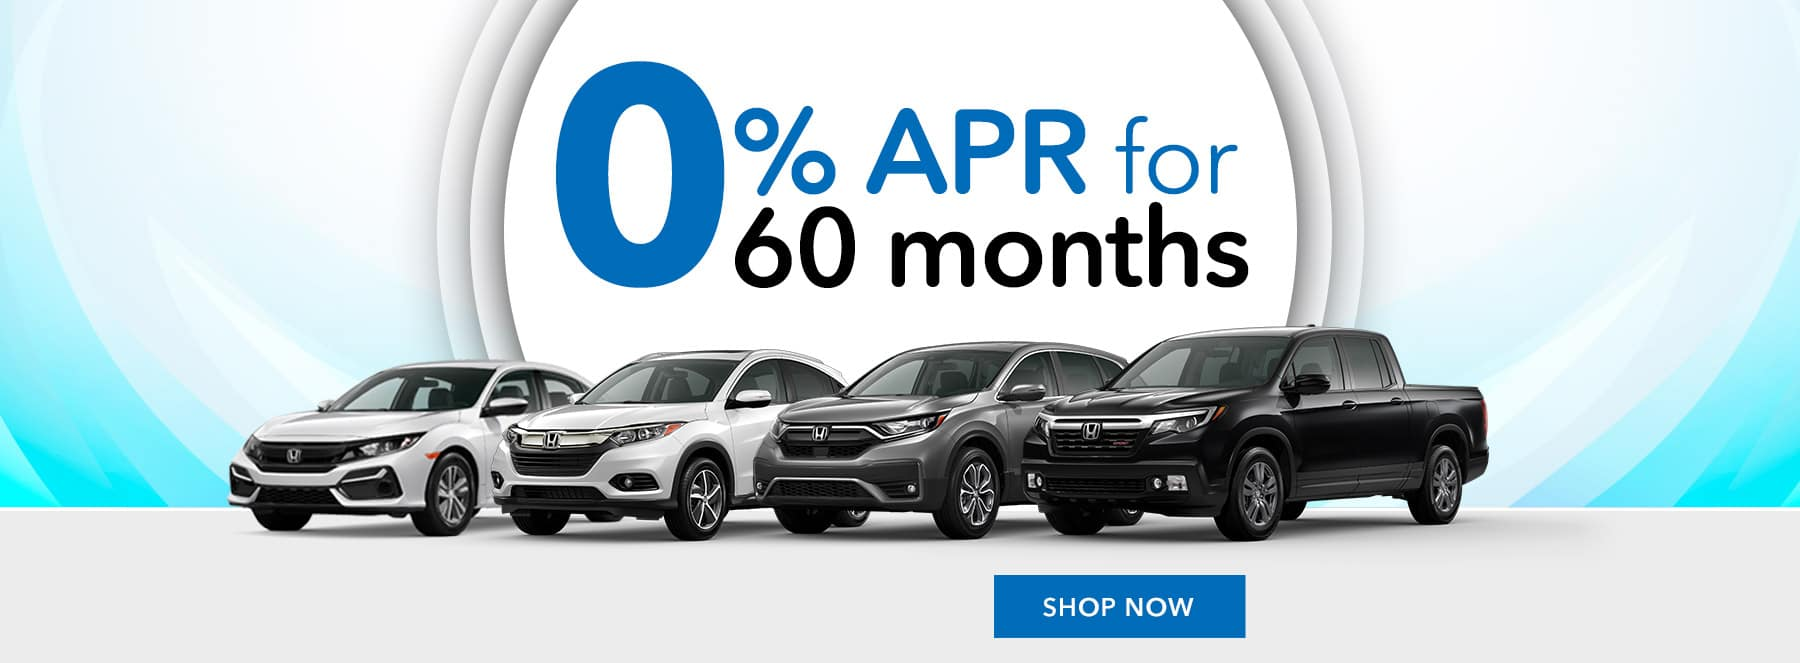 Honda 0% APR for 60 months